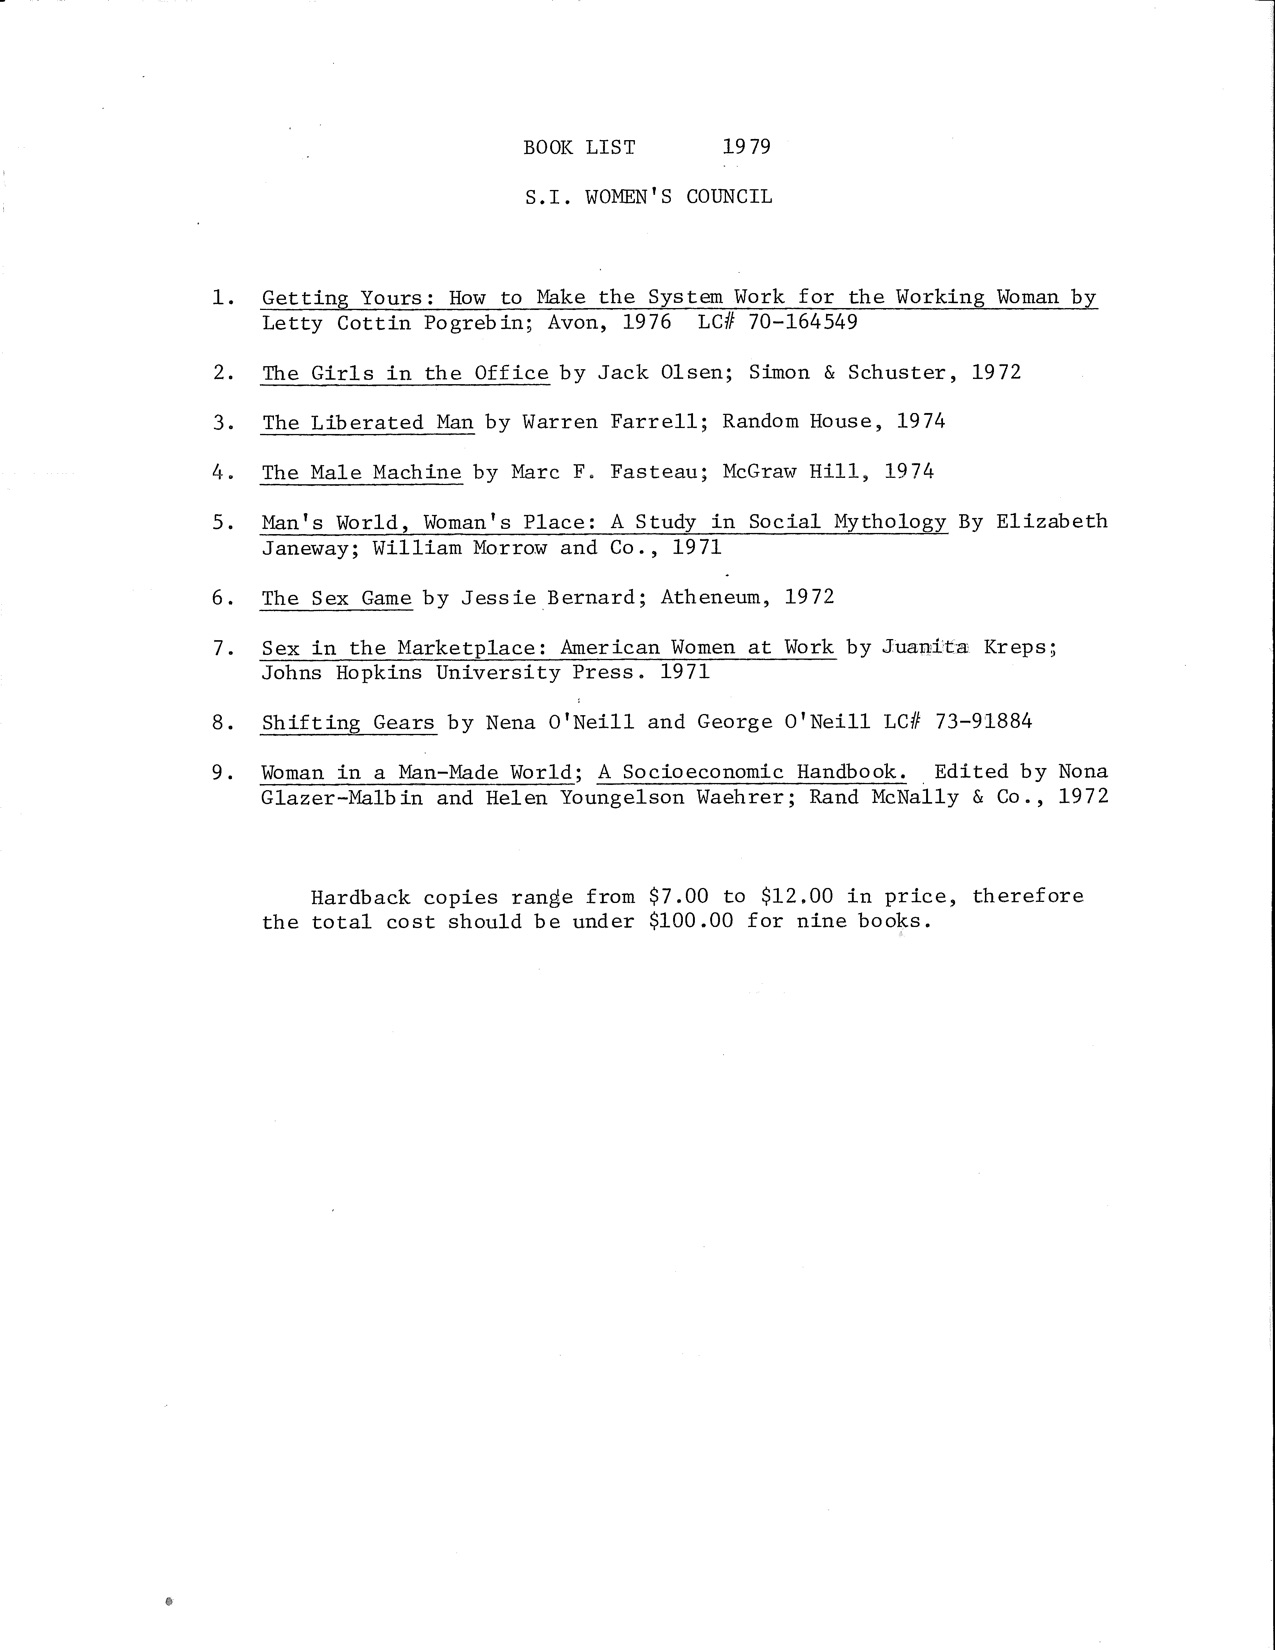 A list of books held by the Smithsonian Women's Council in 1979, and a list of books purchased by th